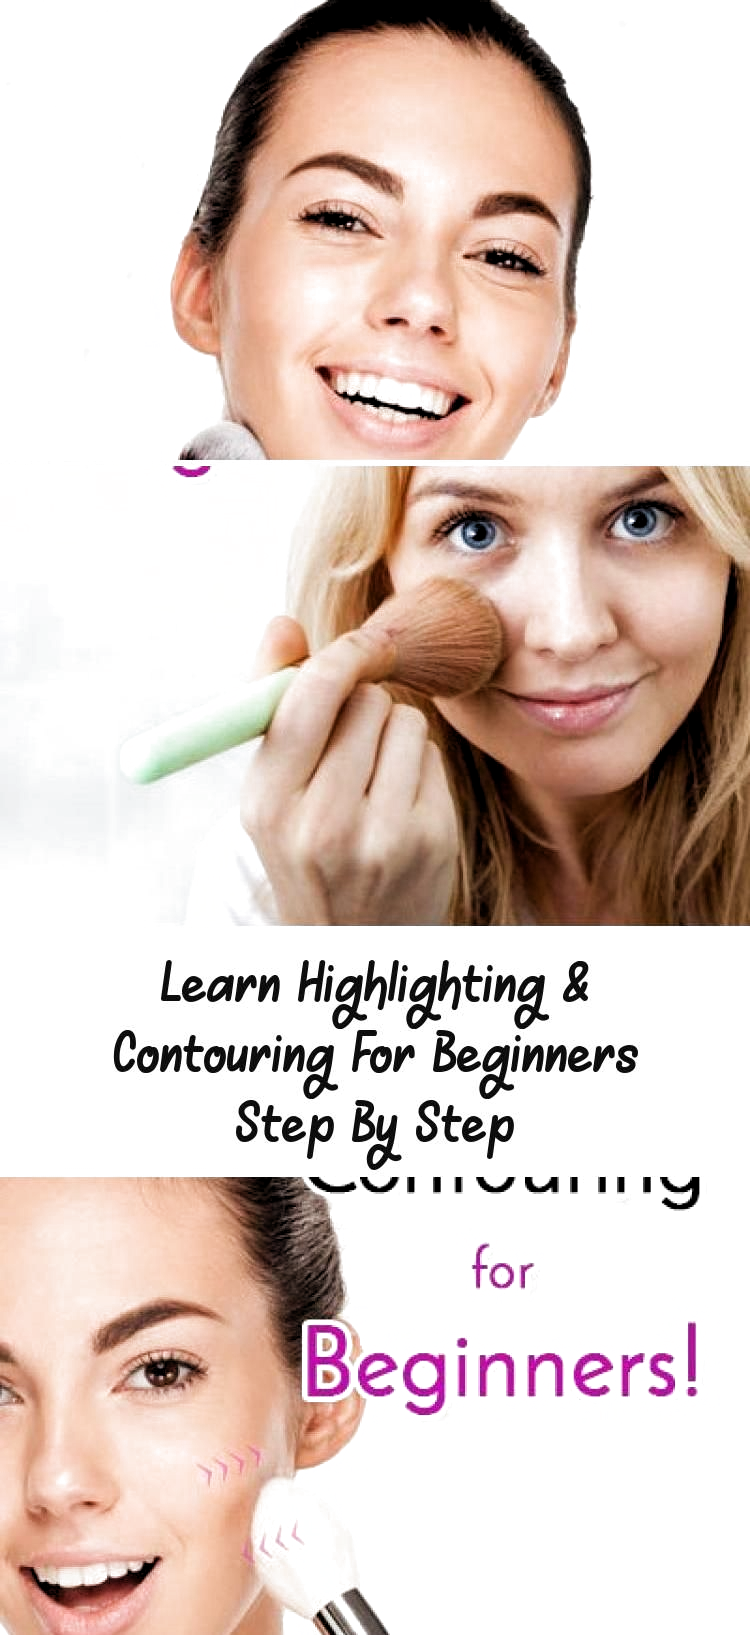 Learn stepbystep highlighting and contouring for